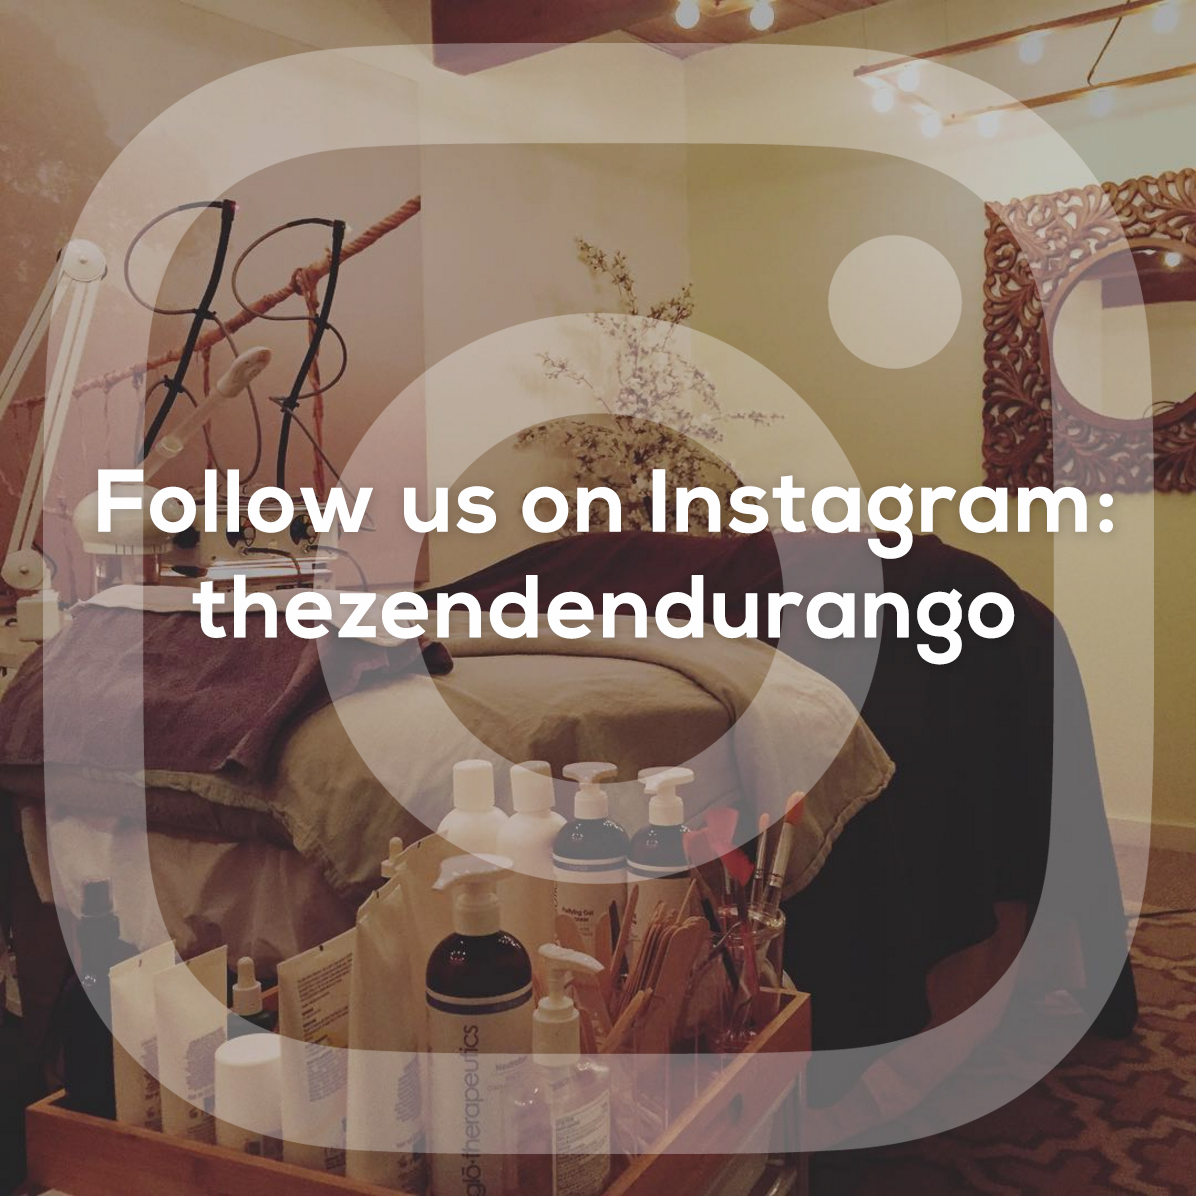 Follow us on Instagram: thezendendurango